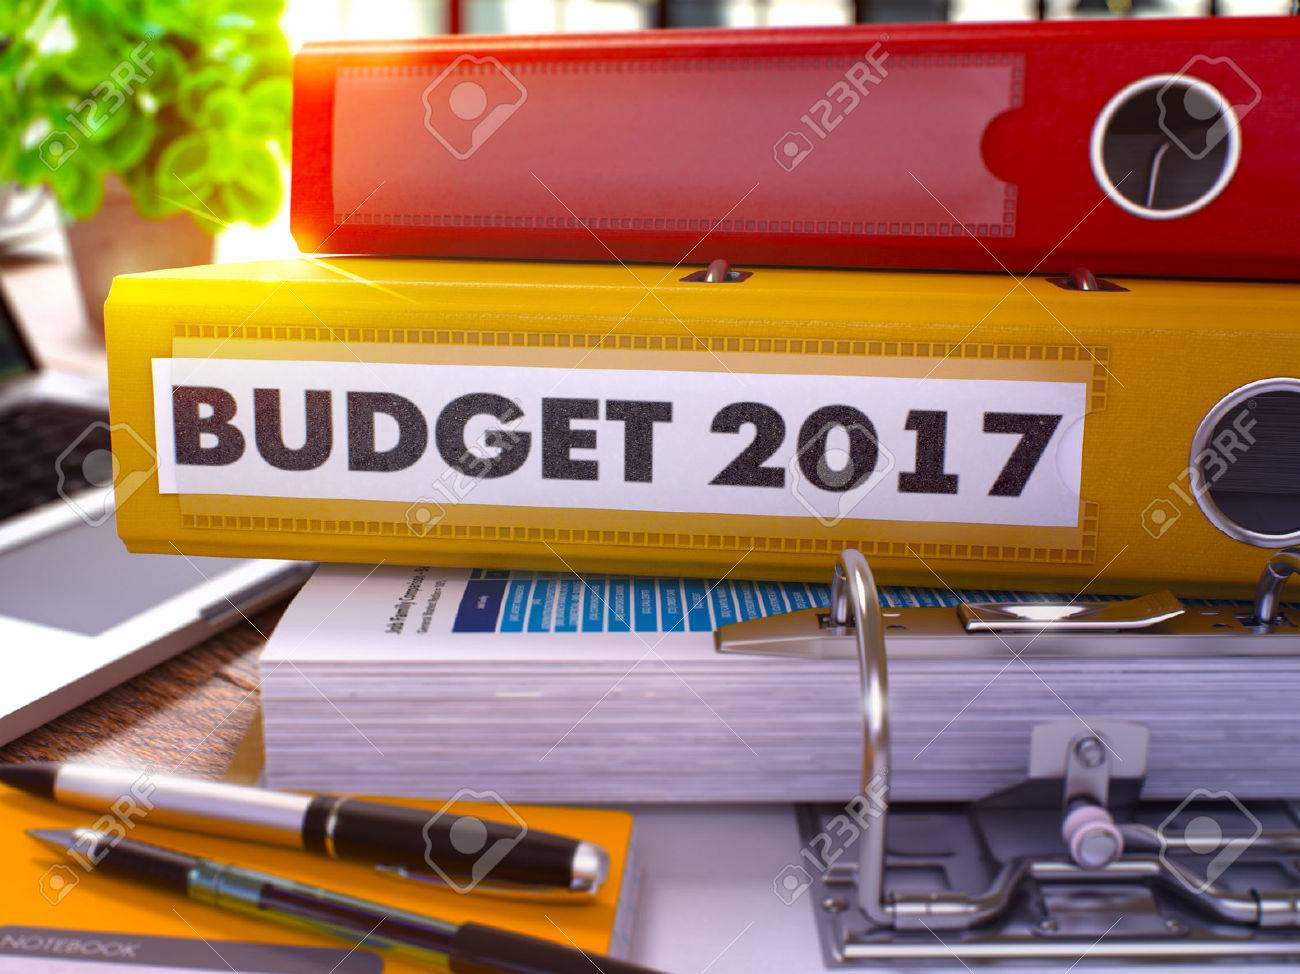 Yellow Office Folder with Inscription Budget 2017 on Office Desktop with Office Supplies and Modern Laptop. Budget 2017 Business Concept on Blurred Background. Budget 2017 - Toned Image. 3D Standard-Bild - 51830573